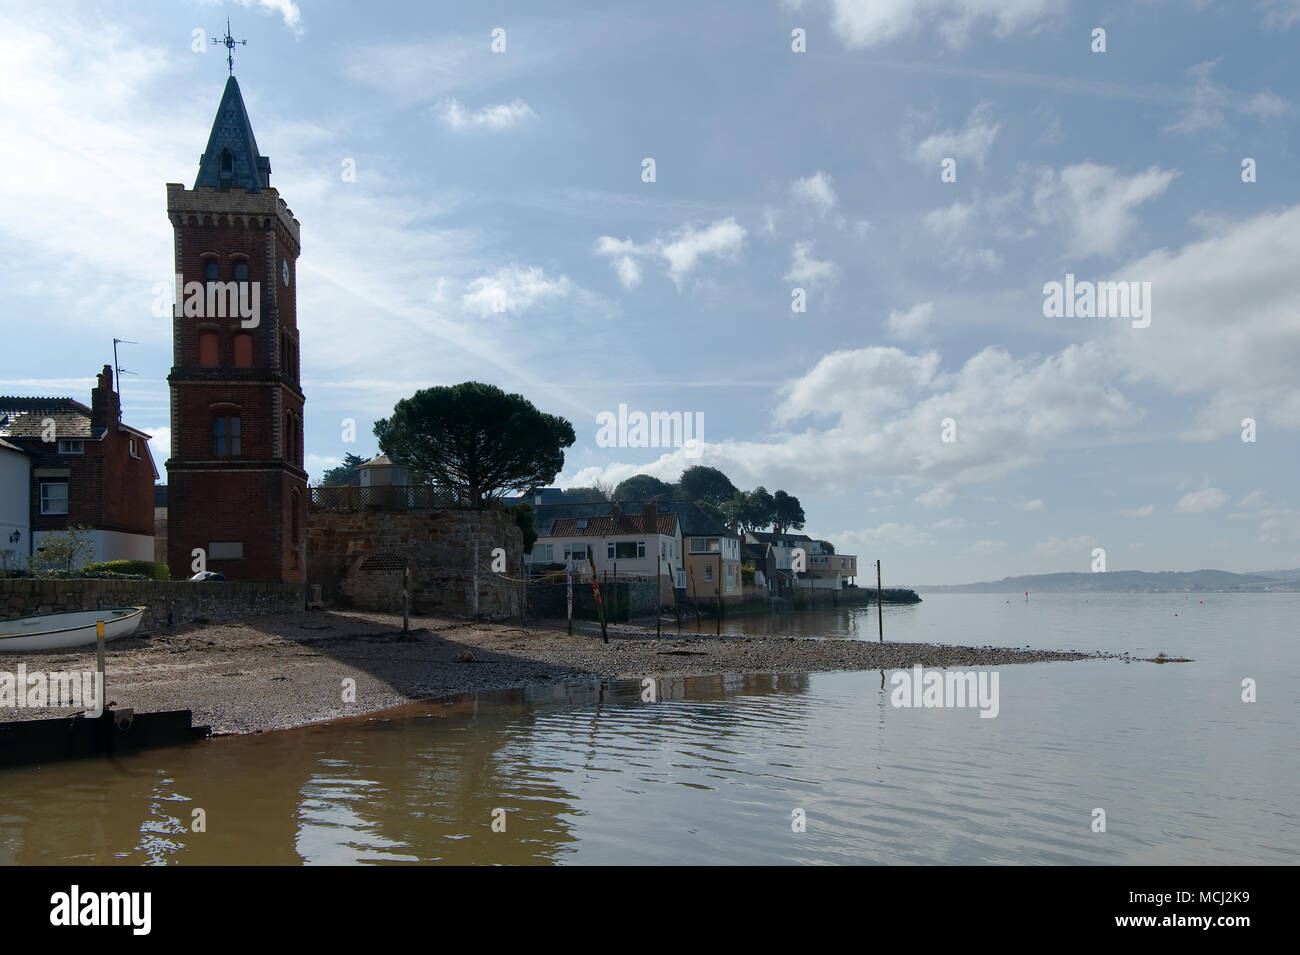 Lympstone harbour and Peter's Tower on the River Exe in Devon, England. 21 March 2018 - Stock Image